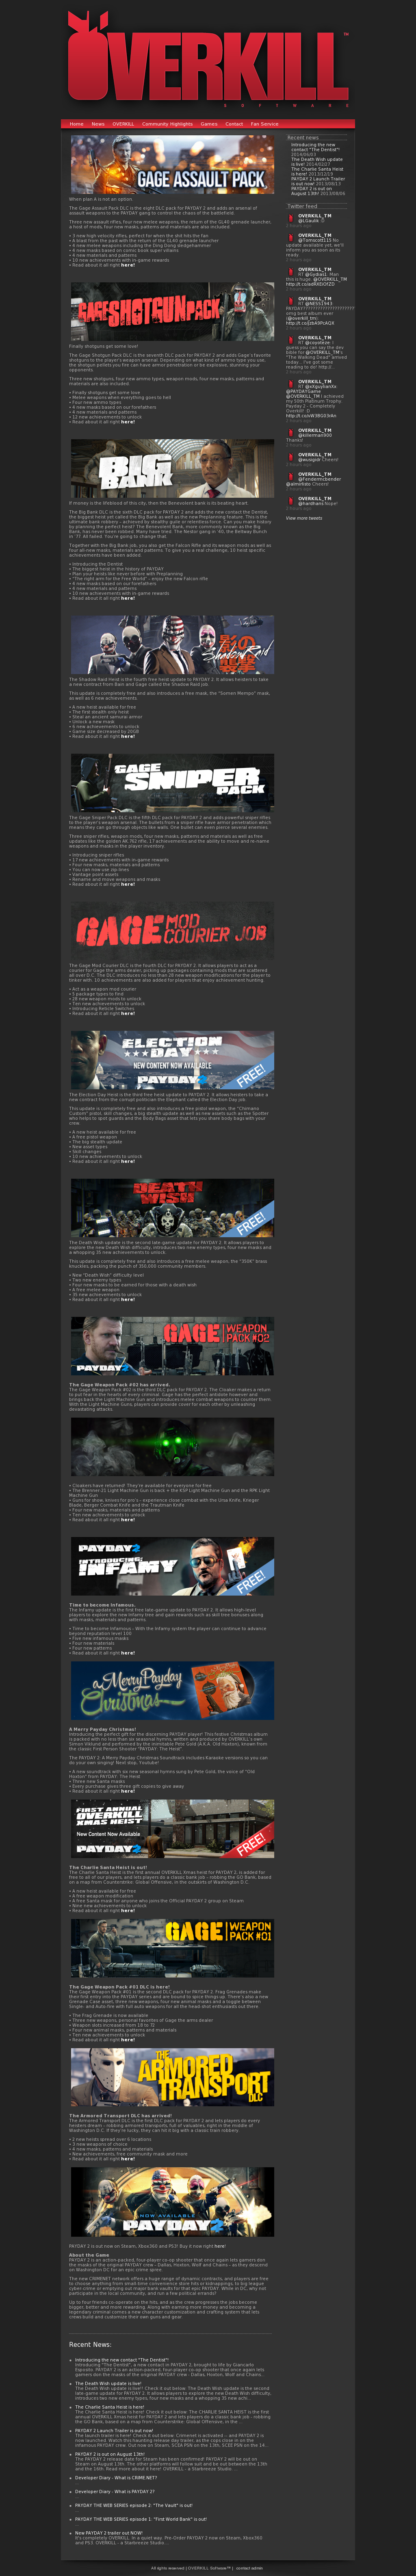 Owler Reports - OVERKILL Software: Payday 2 is responsible for 62